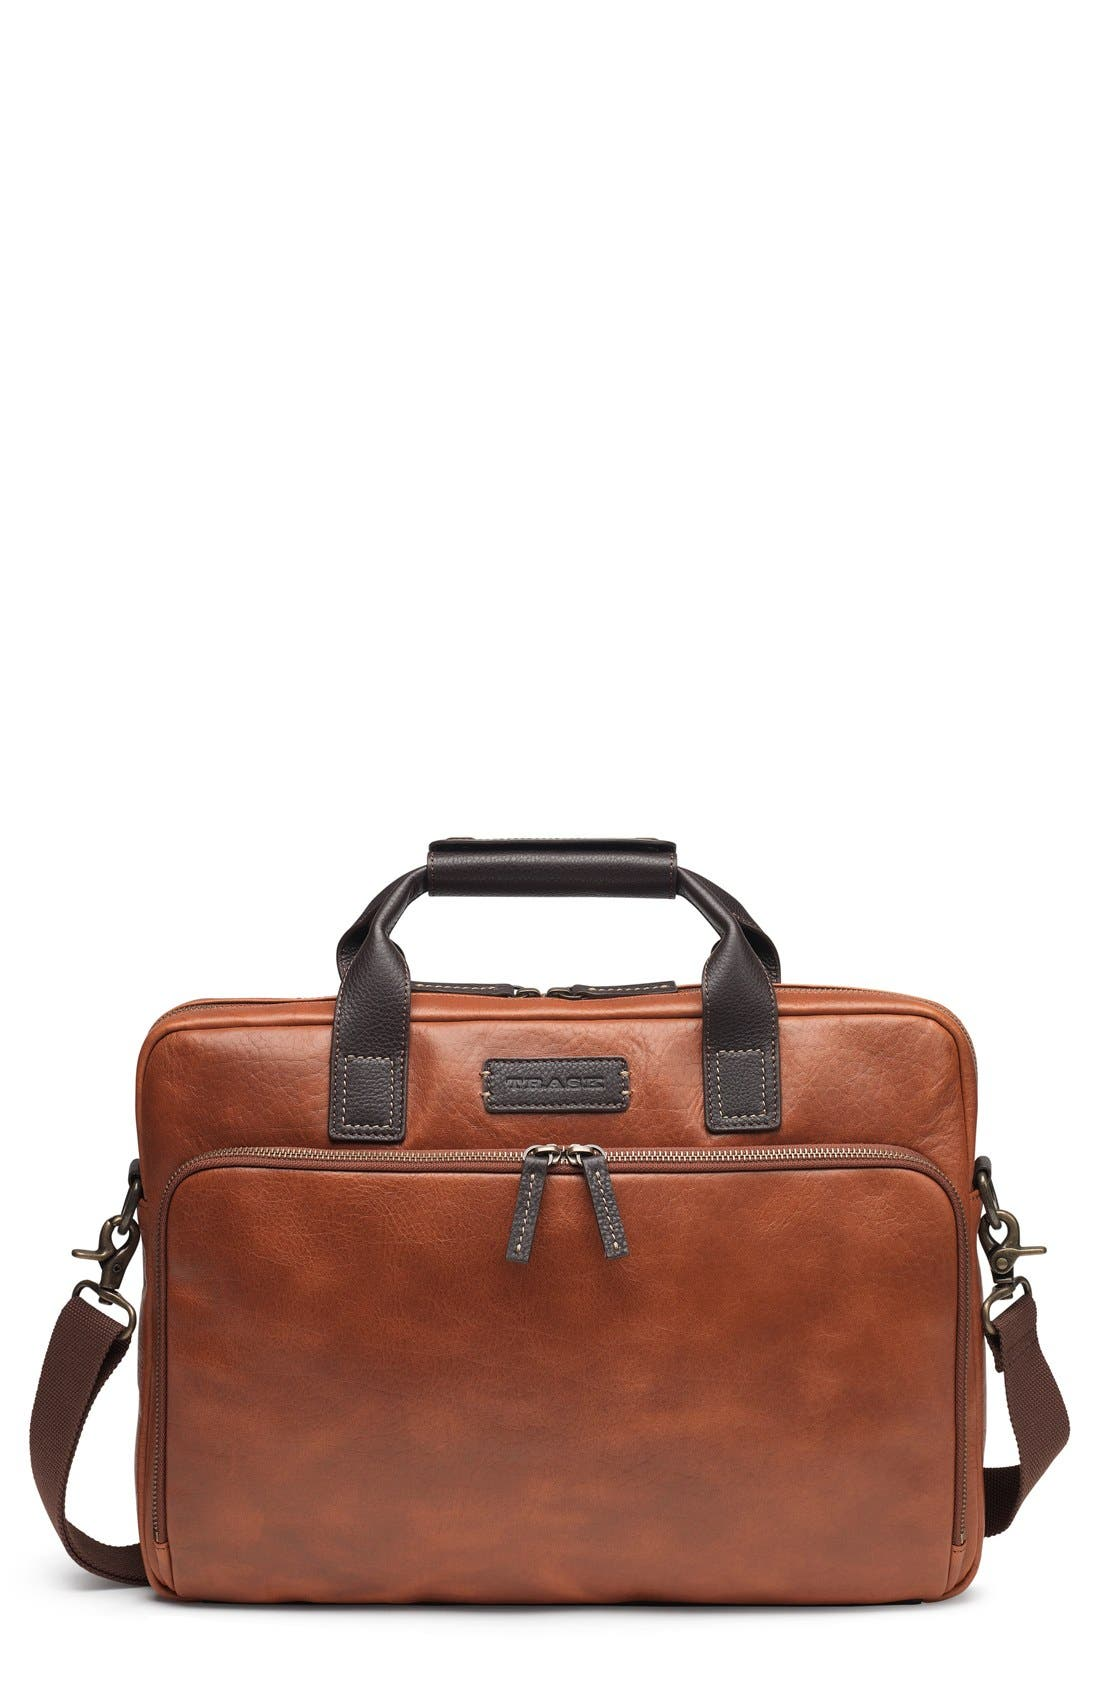 TRASK Jackson Leather Tote